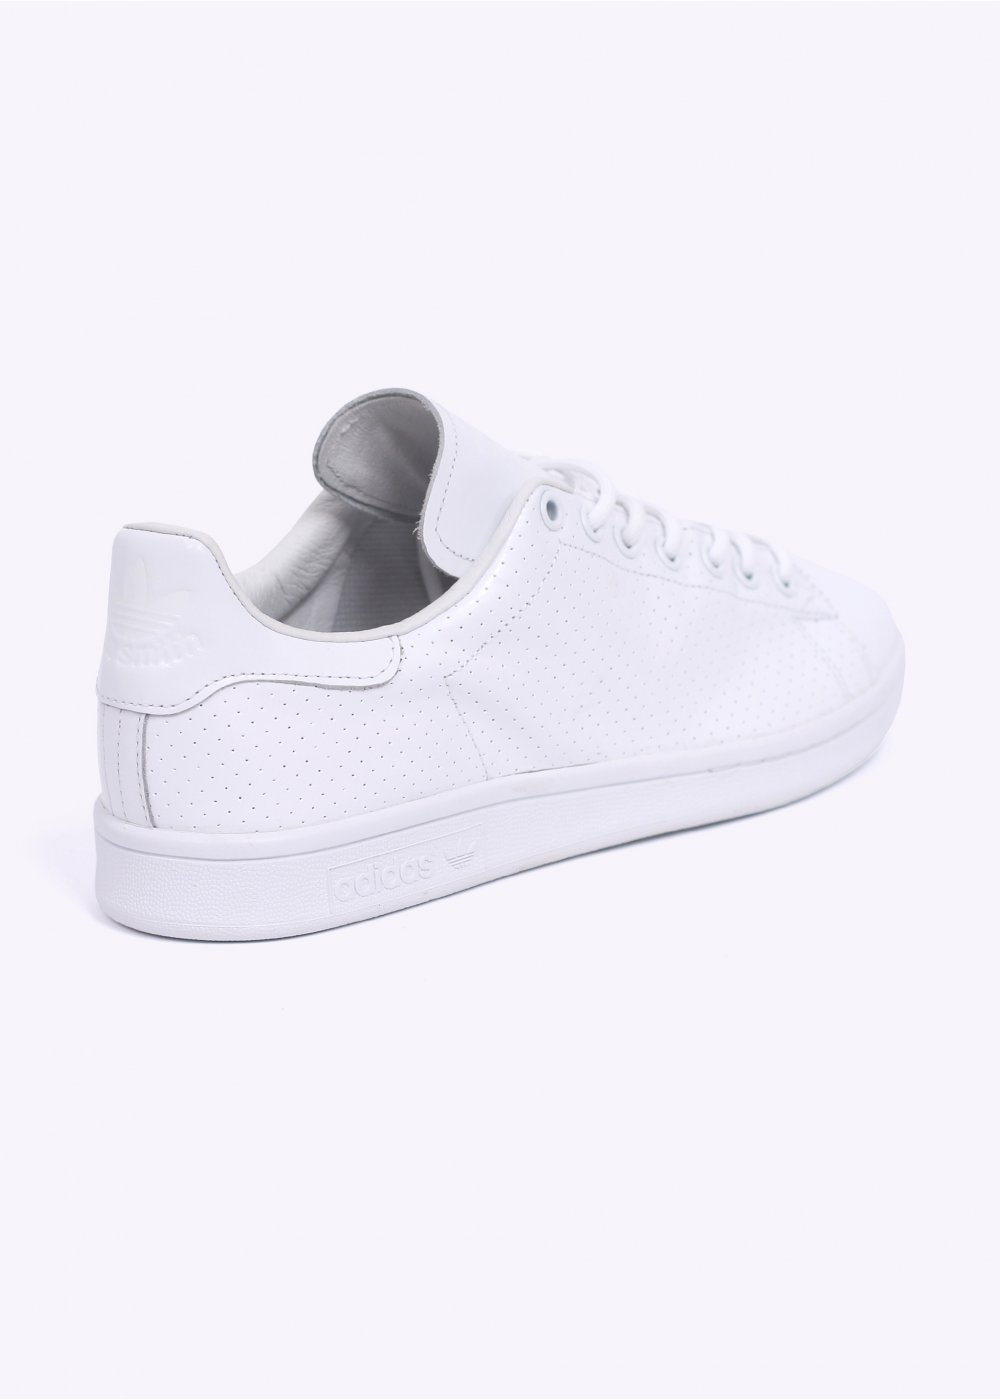 stan smith adidas all white